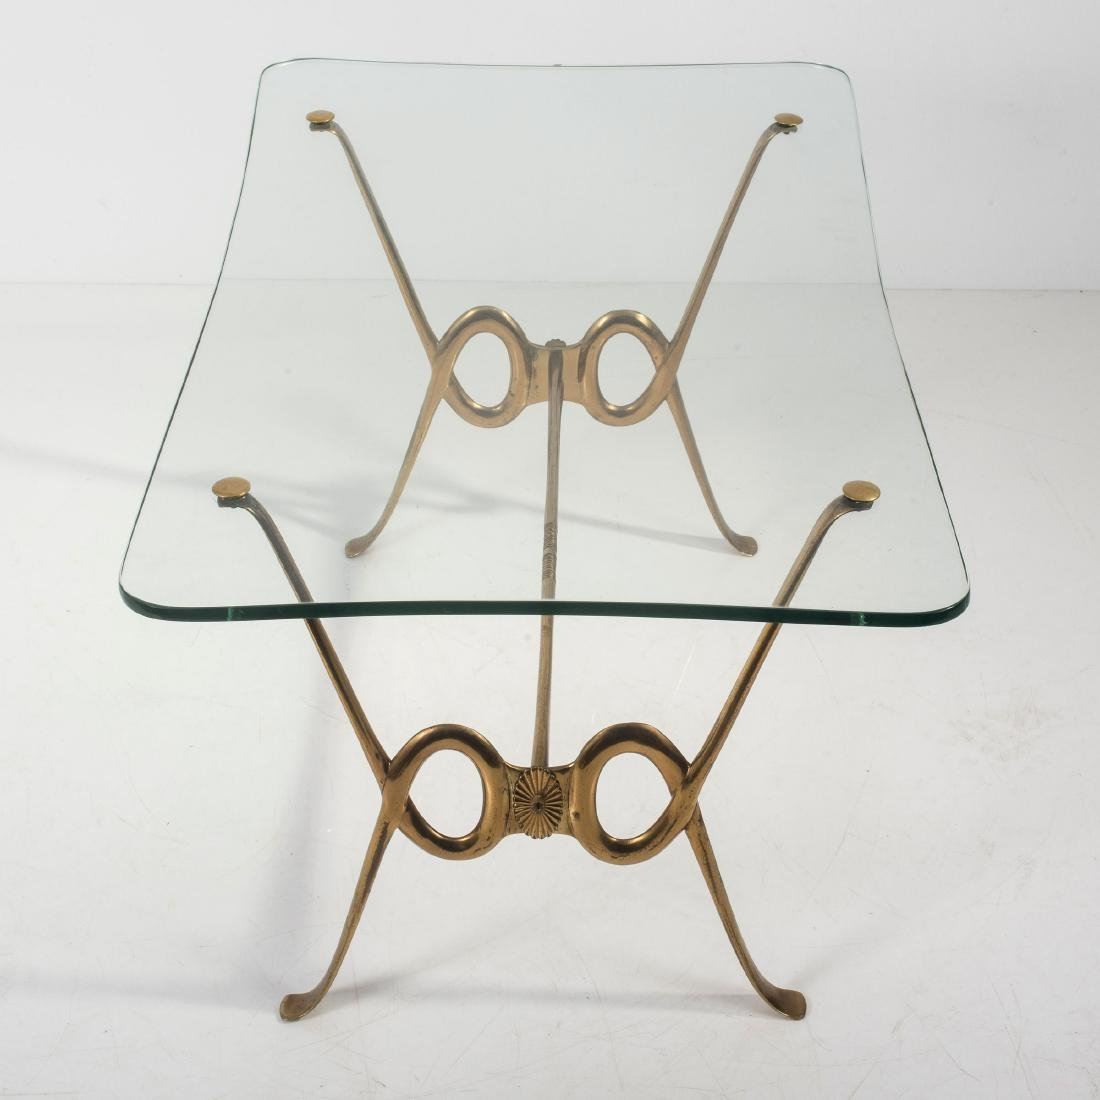 Coffee table, 1940/50s - 3